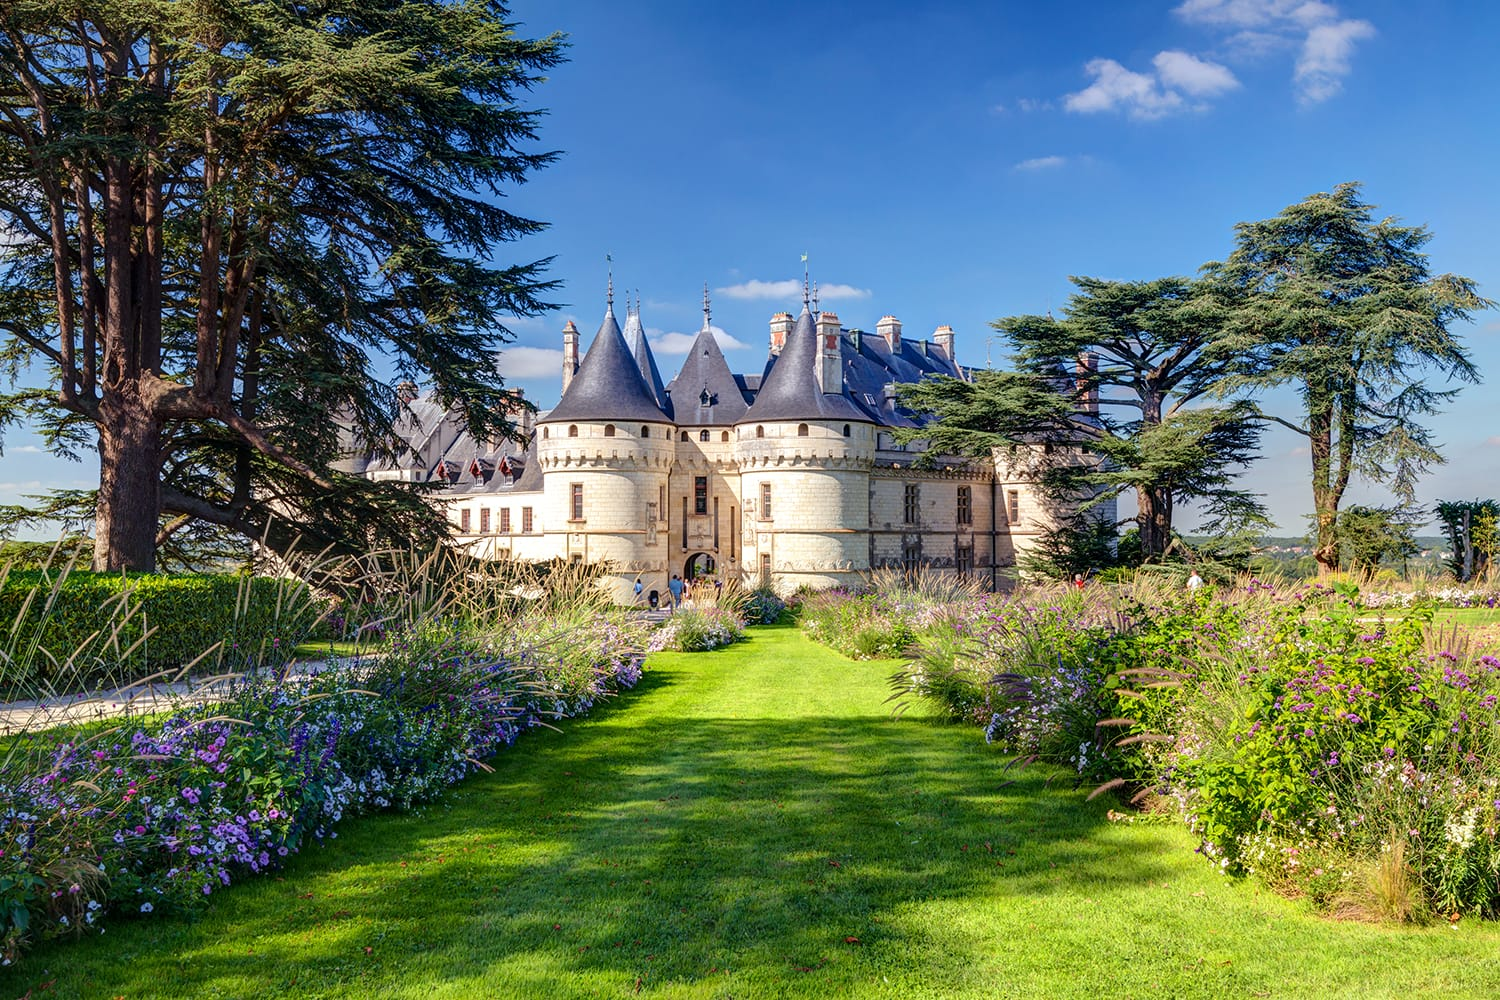 Panorama of Chateau de Chaumont-sur-Loire in summer, Loire Valley, France